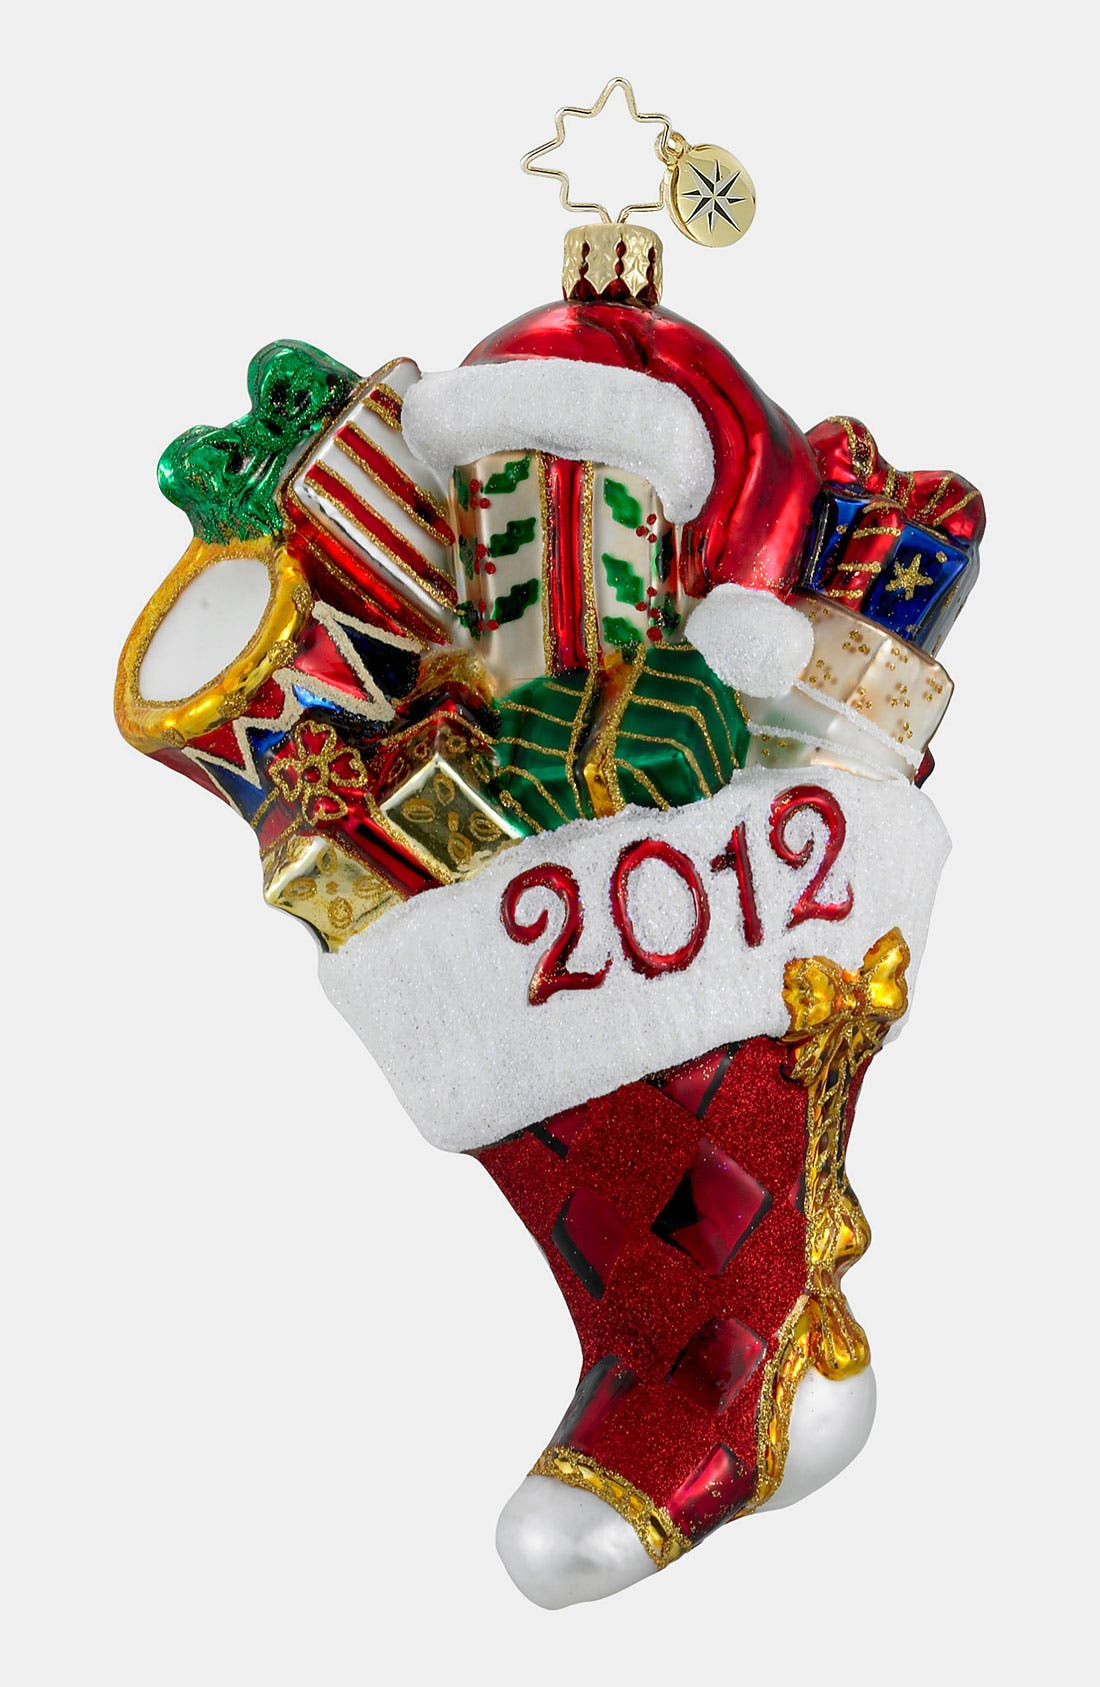 Main Image - Christopher Radko 'Presents-a-Plenty' Ornament